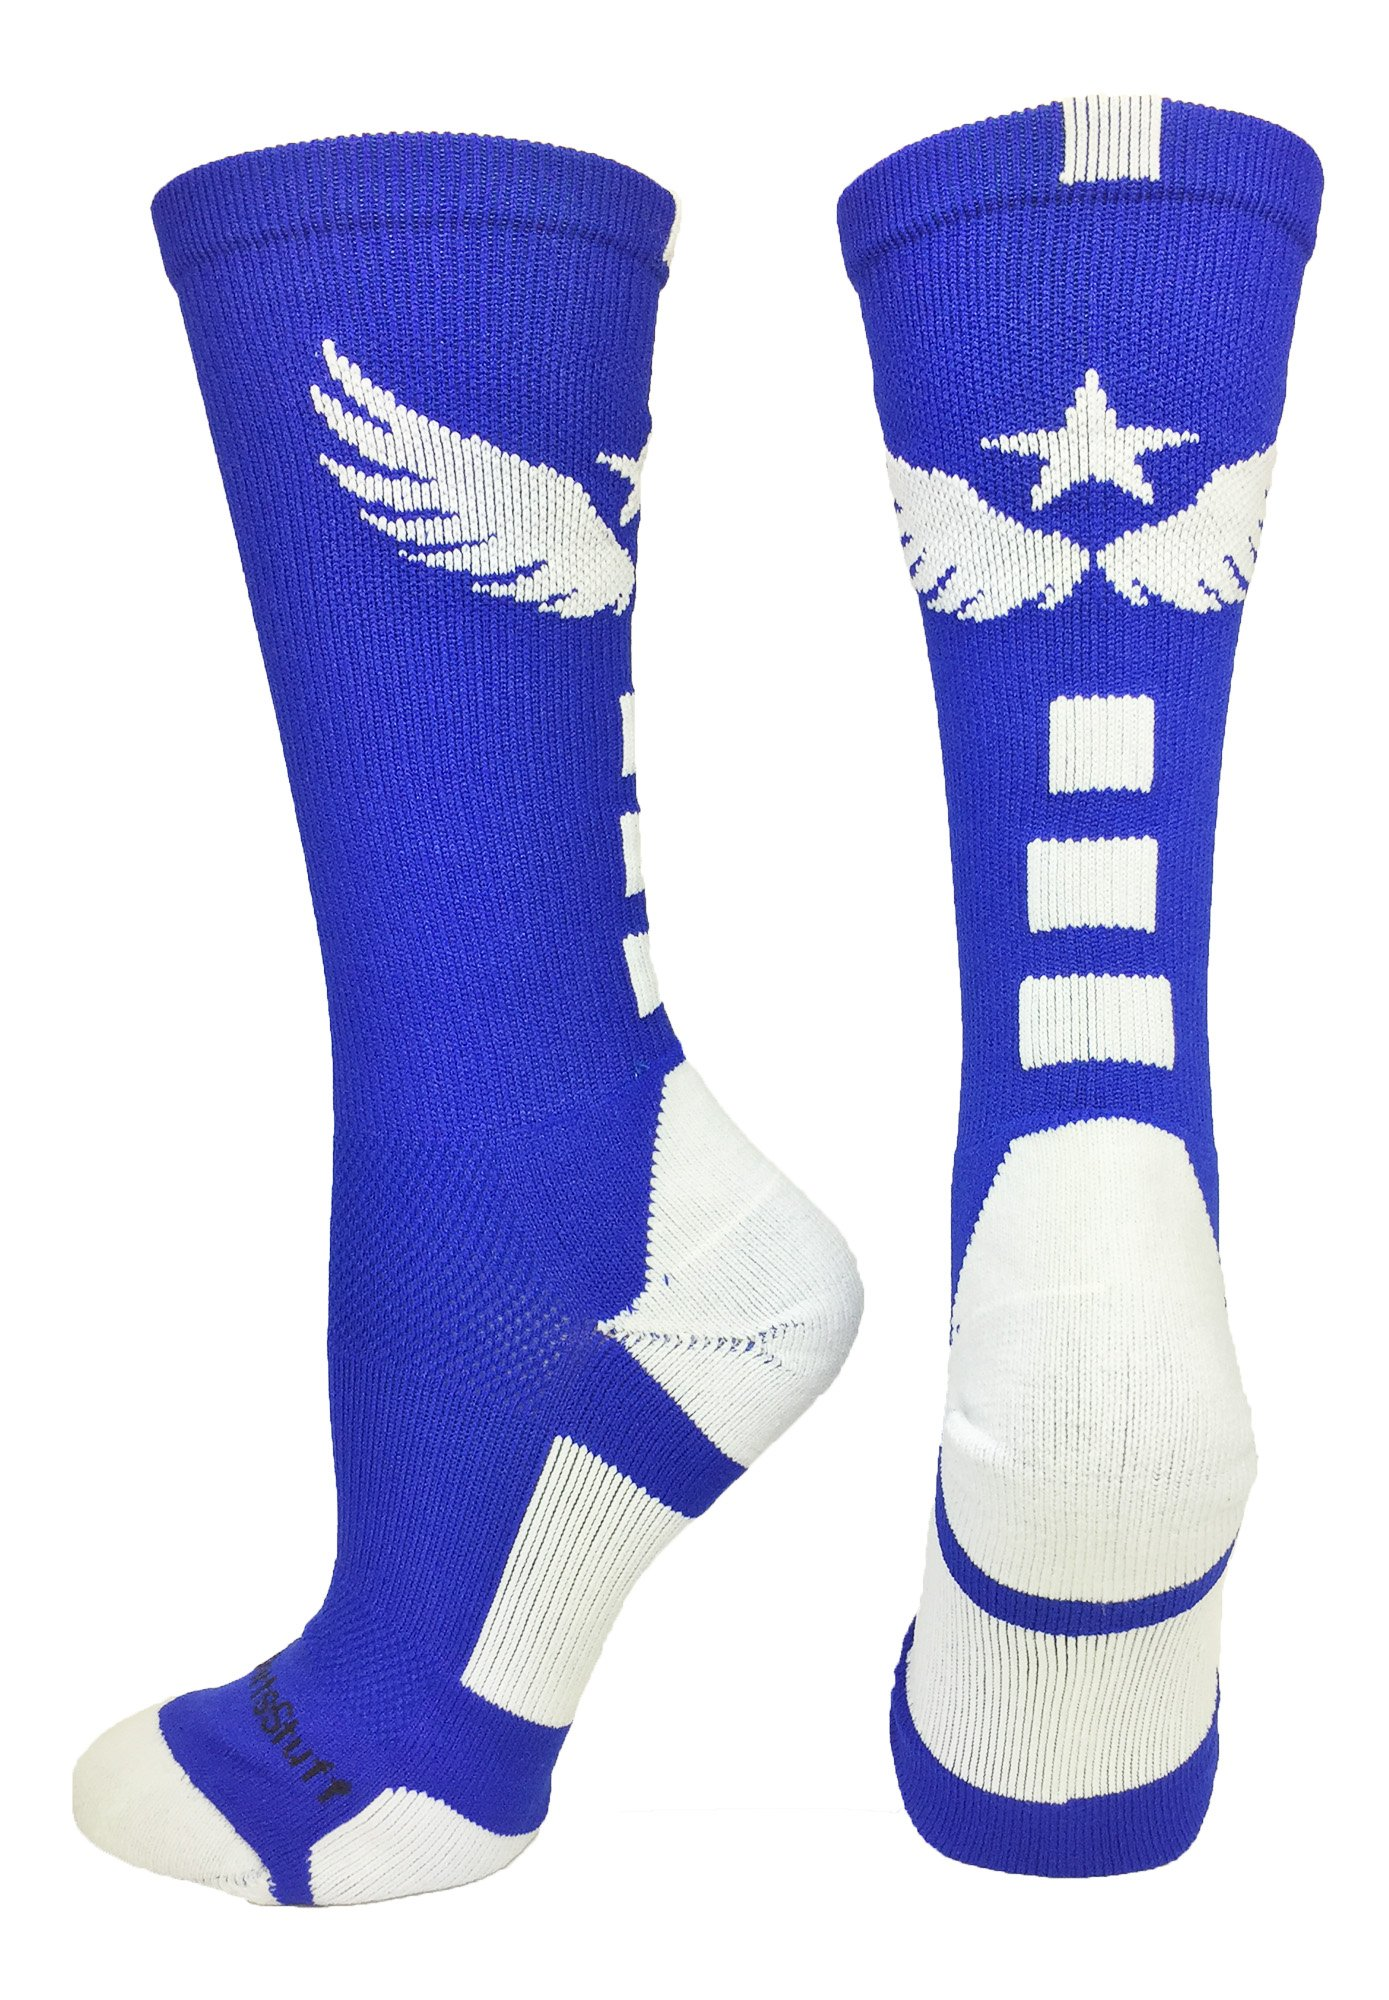 MadSportsStuff Light Speed Athletic Crew Socks (Royal/White, Small) by MadSportsStuff